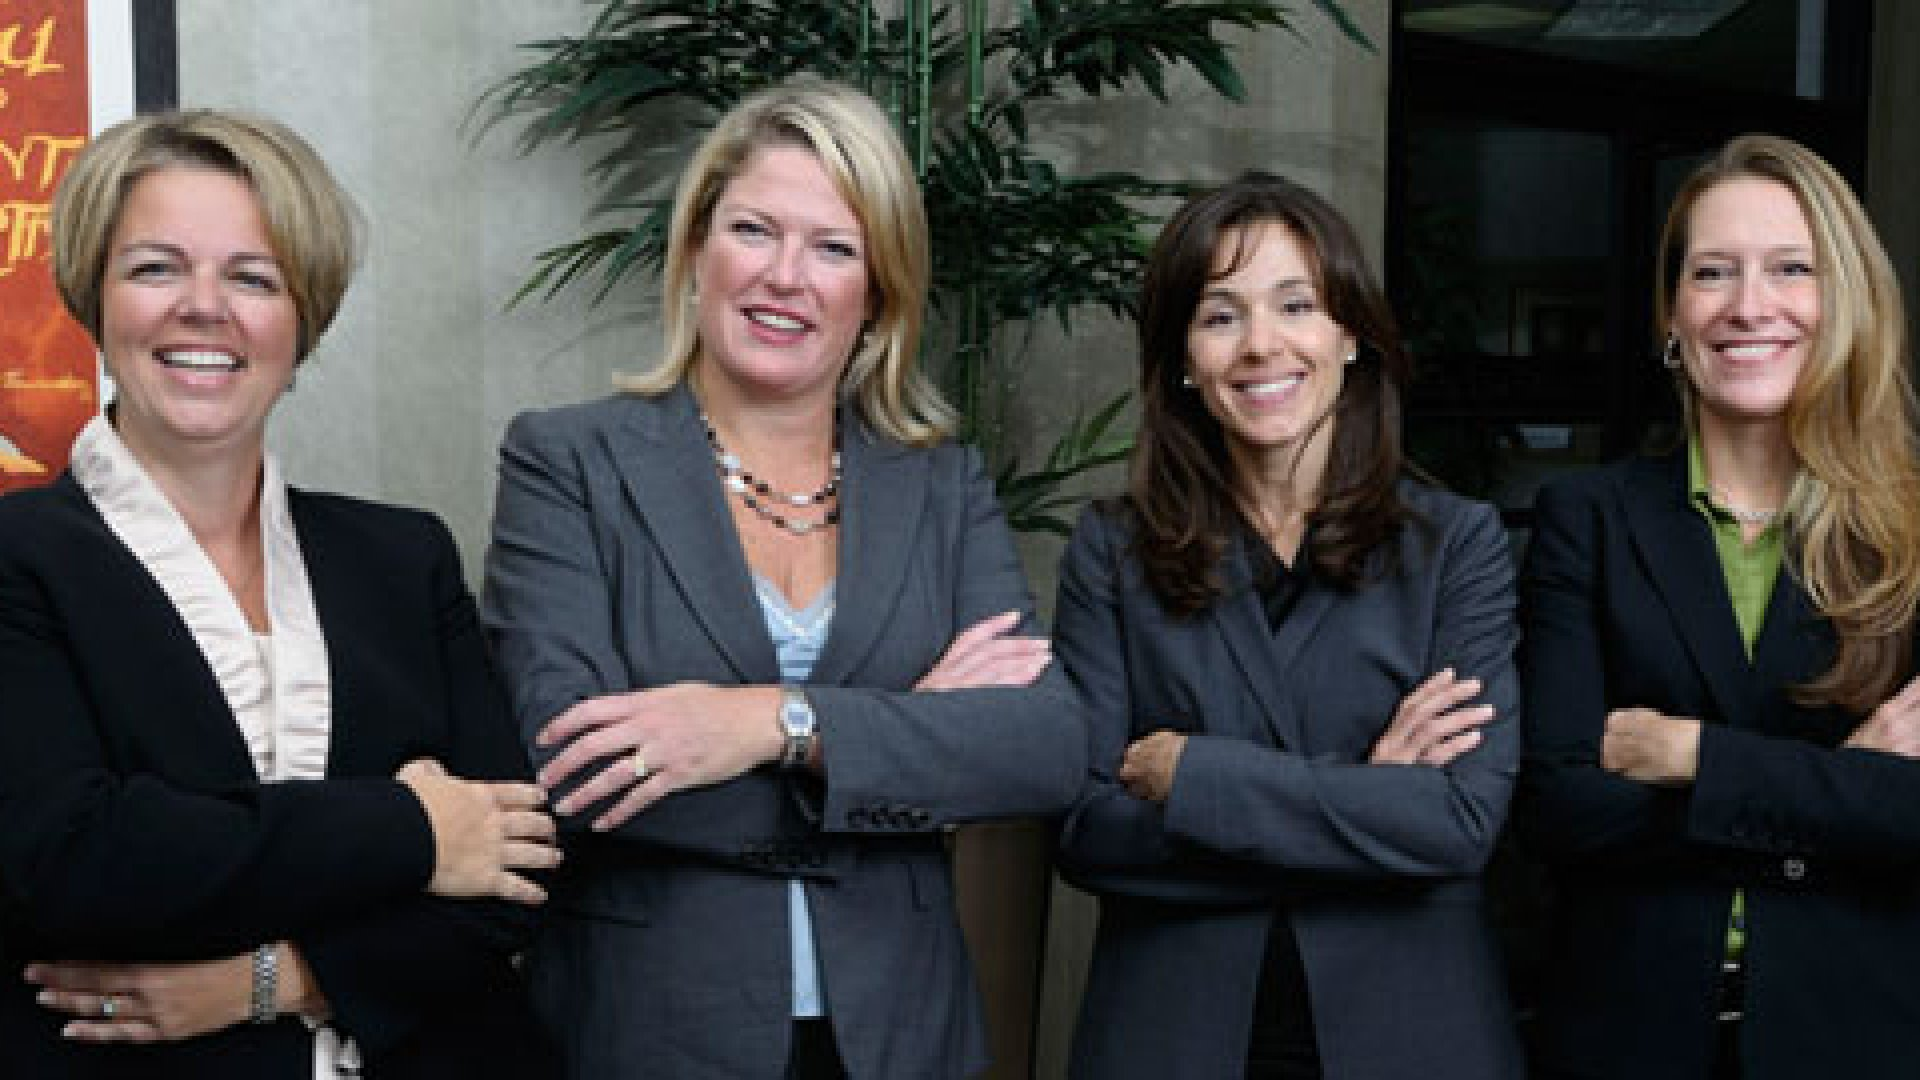 From left to right, Kerrie Heslin, Katherin Nukk-Freeman, Suzanne Cerra, and Robin Rome, four partners at Nukk-Freeman & Cerra P.C. as of October 2010.